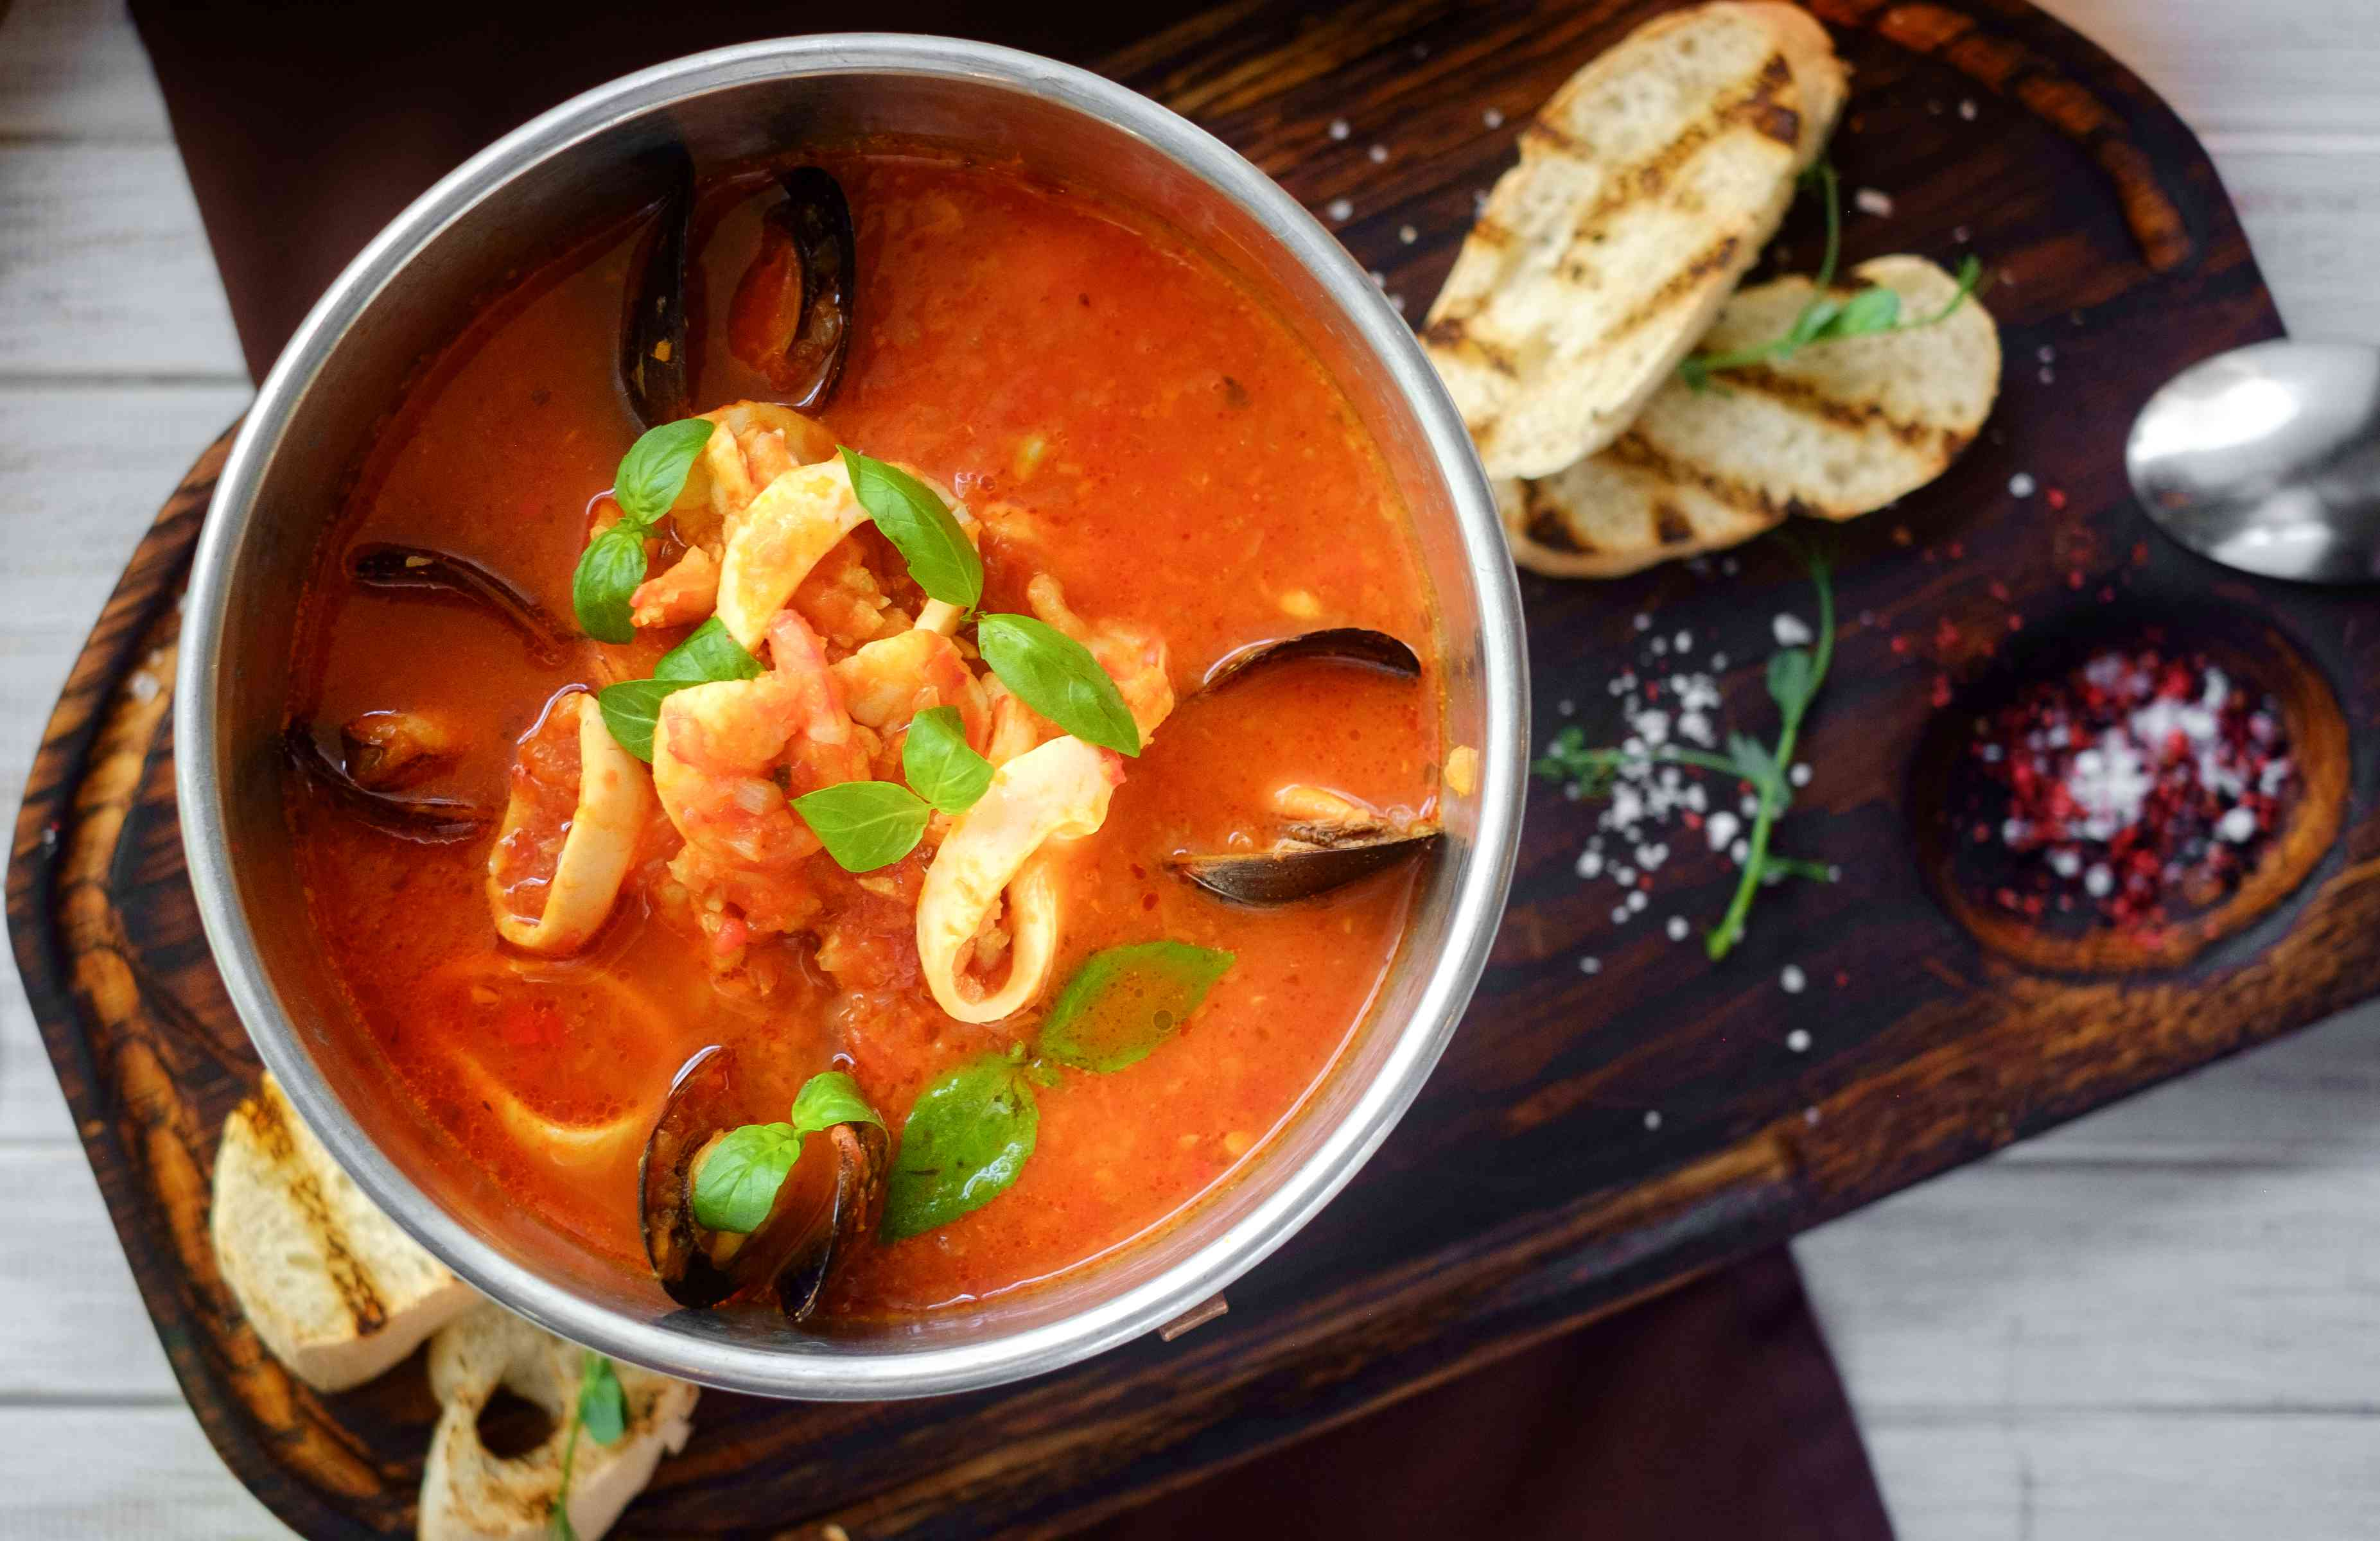 tomato soup with seafood, cacciucco, top view